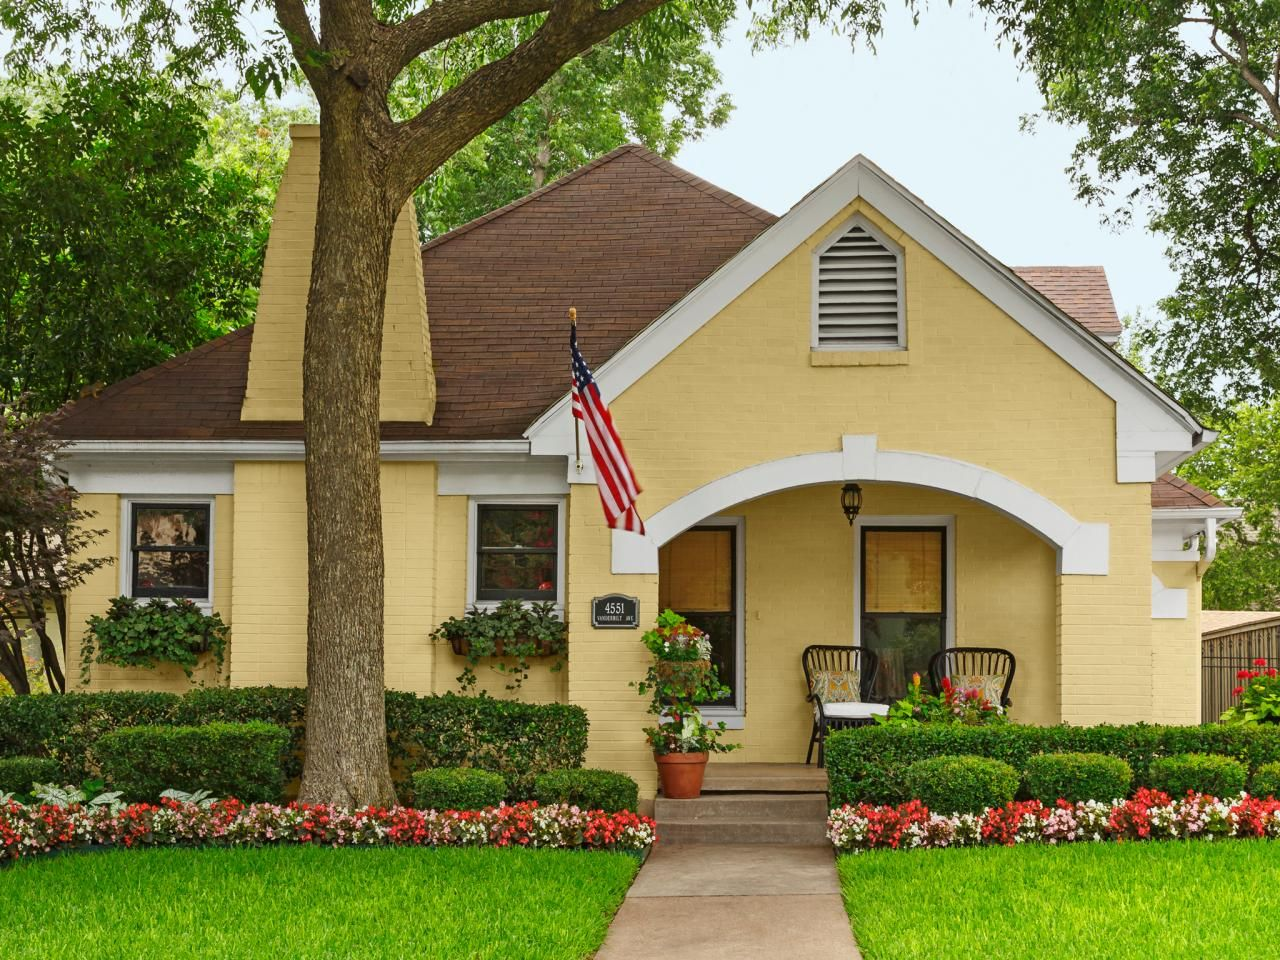 Curb appeal ideas from dallas tx hgtv magazine - Hgtv exterior paint color schemes ...